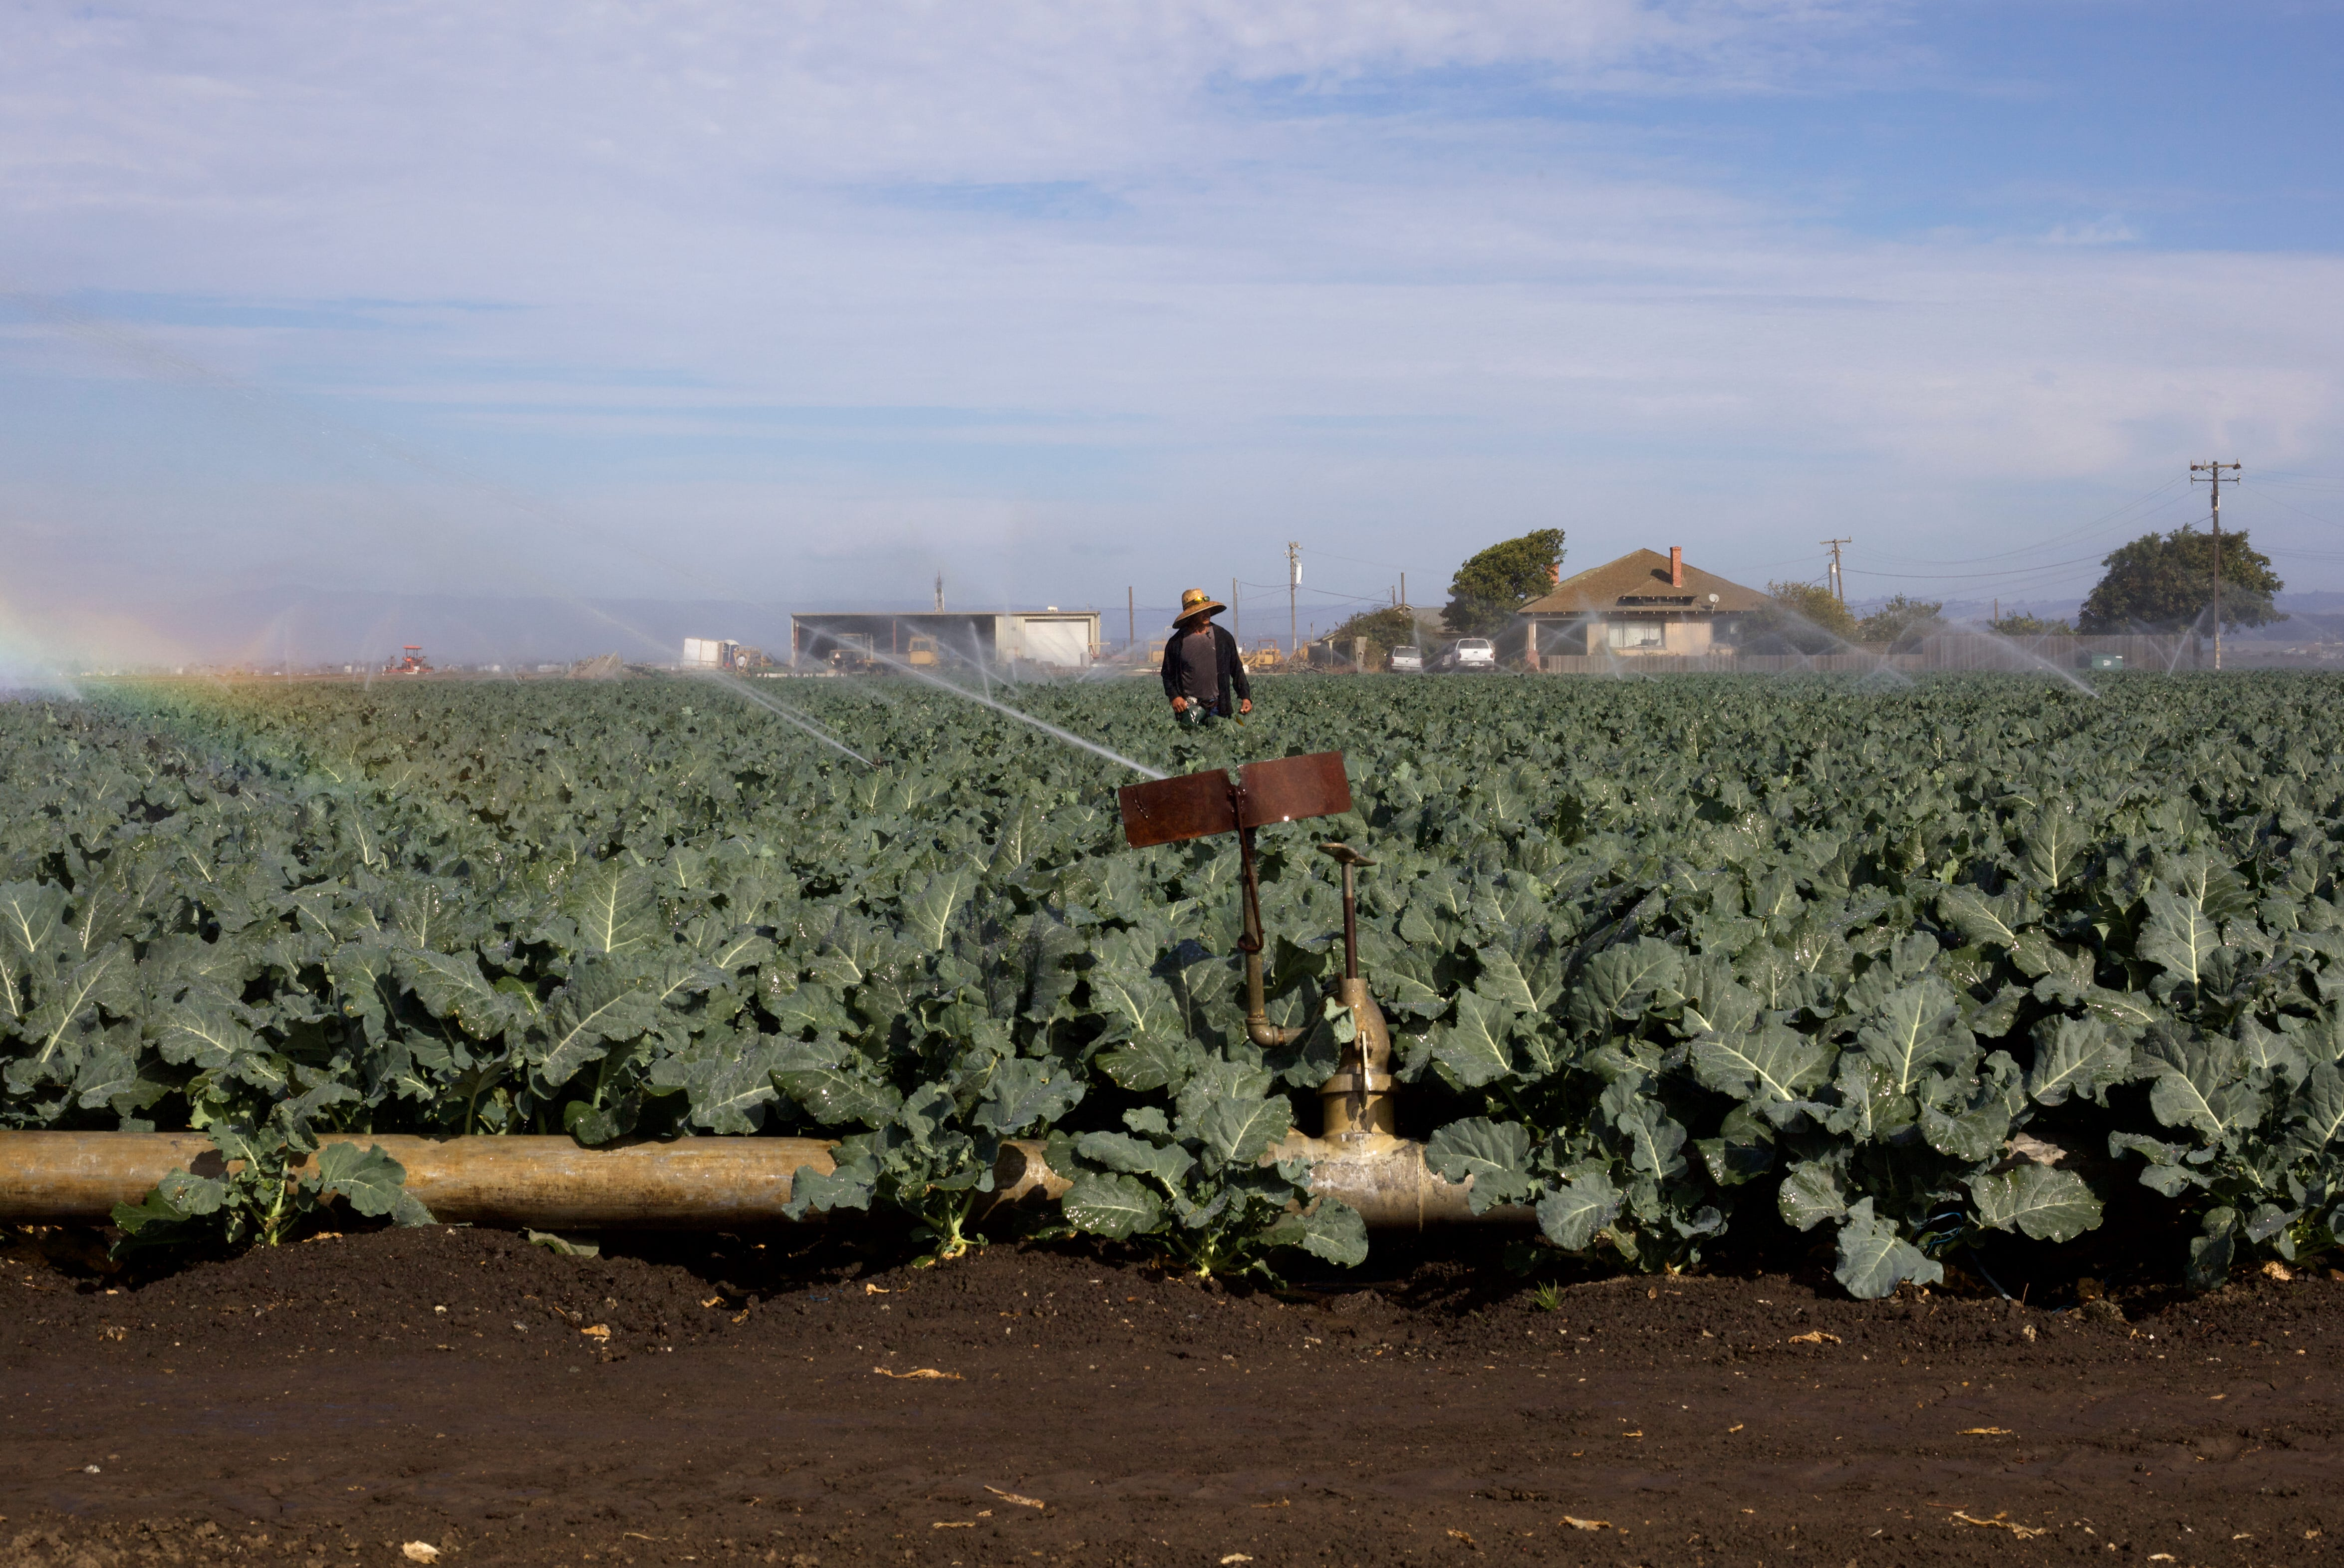 More than 90,000 farmworkers living in the Salinas and Pajaro Valley region earn an average of $17,500 a year. Yet, Salinas is one of the most expensive places to live in the U.S.